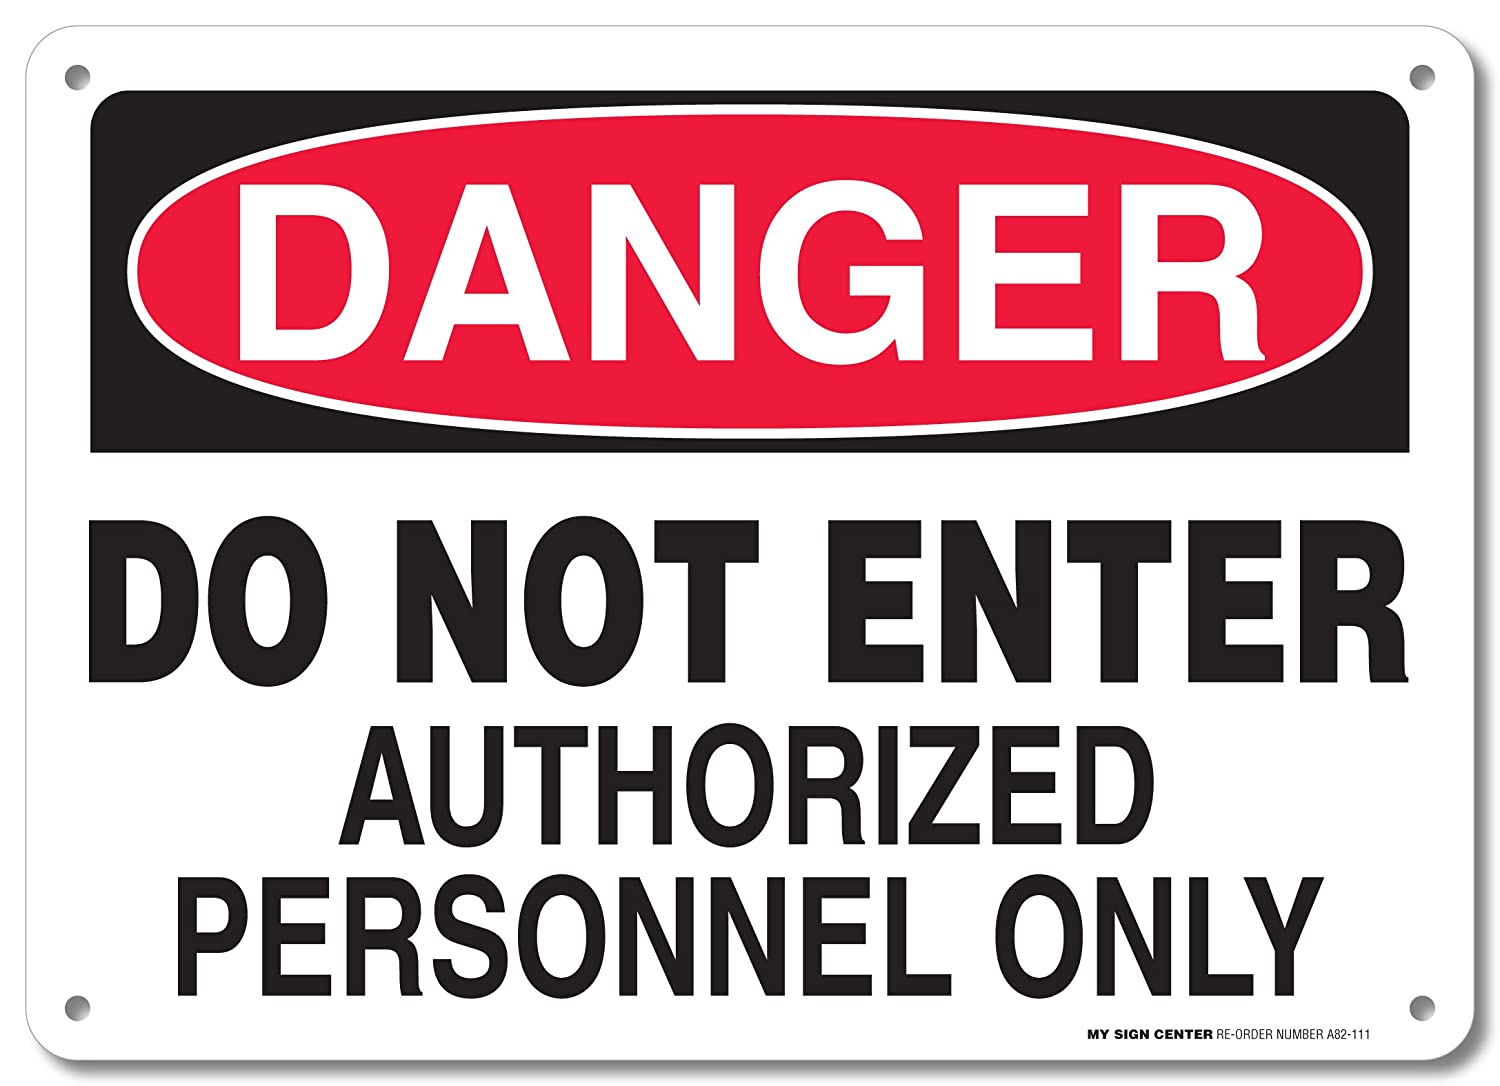 Danger Do Not Enter Authorized Personnel Only Sign - 10